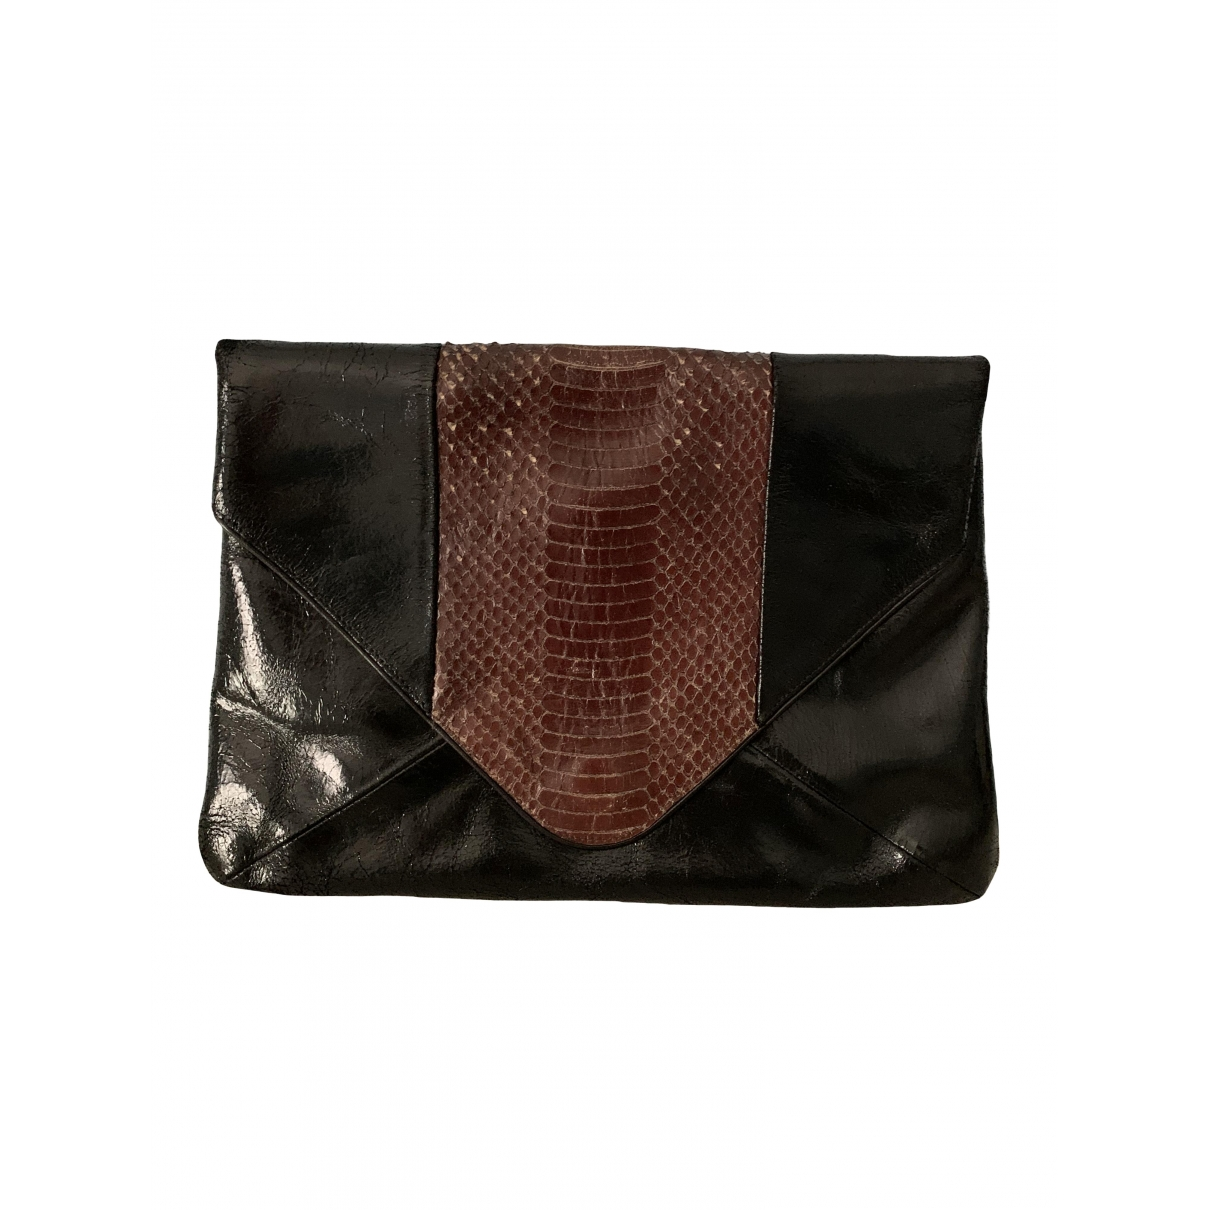 Dries Van Noten \N Black Leather Clutch bag for Women \N